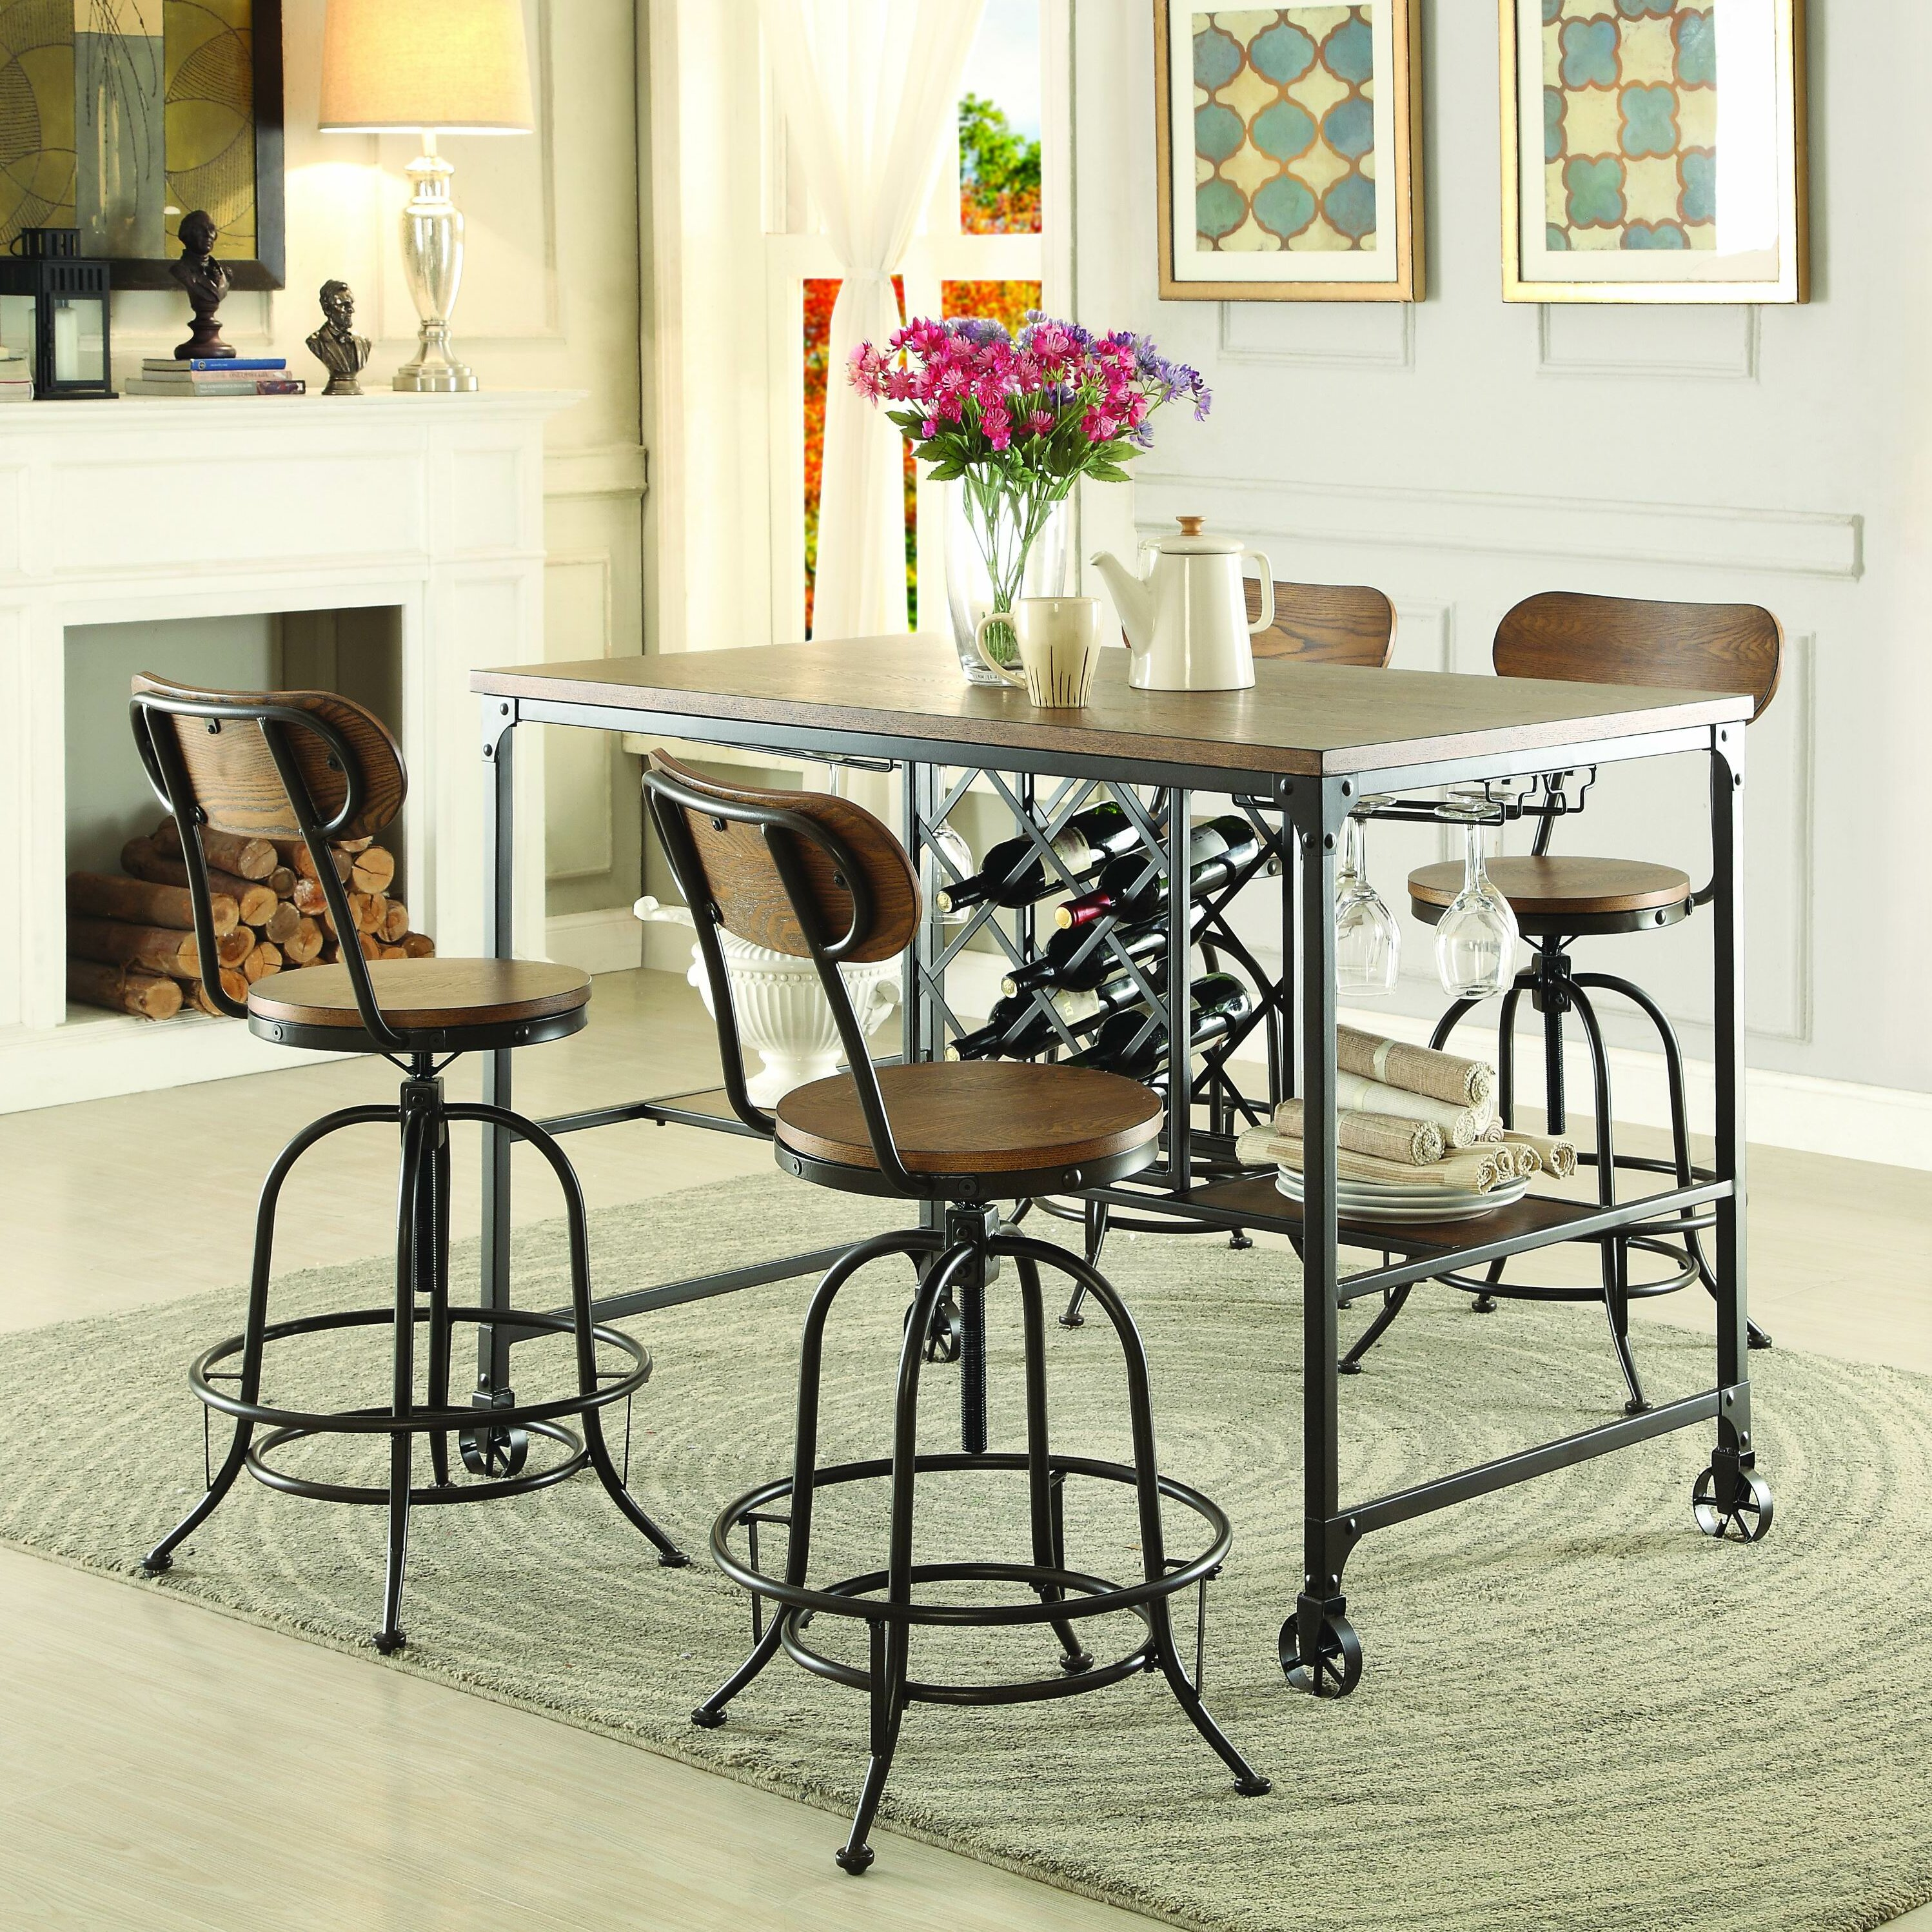 Homelegance Angstrom Counter Height Dining Table Reviews Wayfair